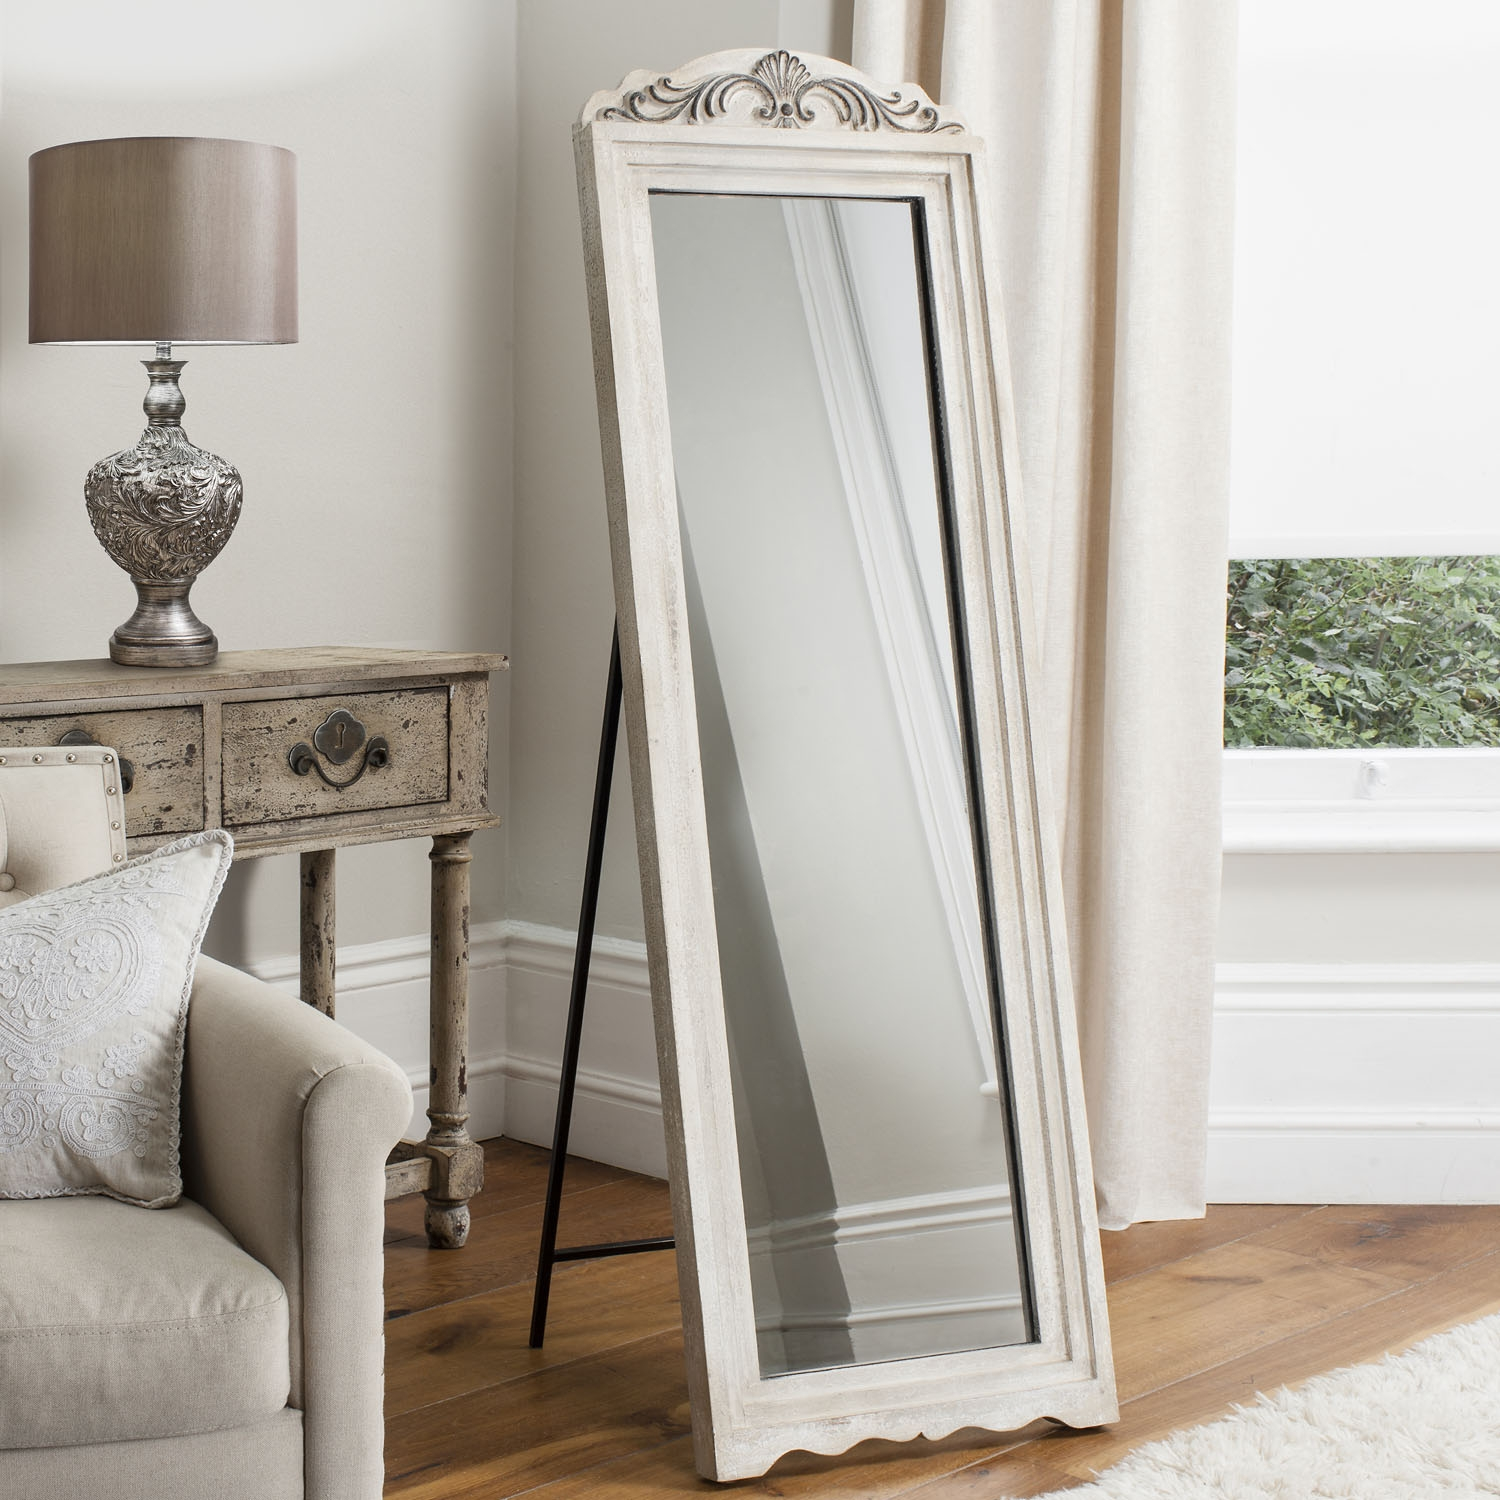 Charming Cheval Mirror Jewelry Armoire Ideas Cheval Mirror Within Shabby Chic Floor Mirror (Image 4 of 15)